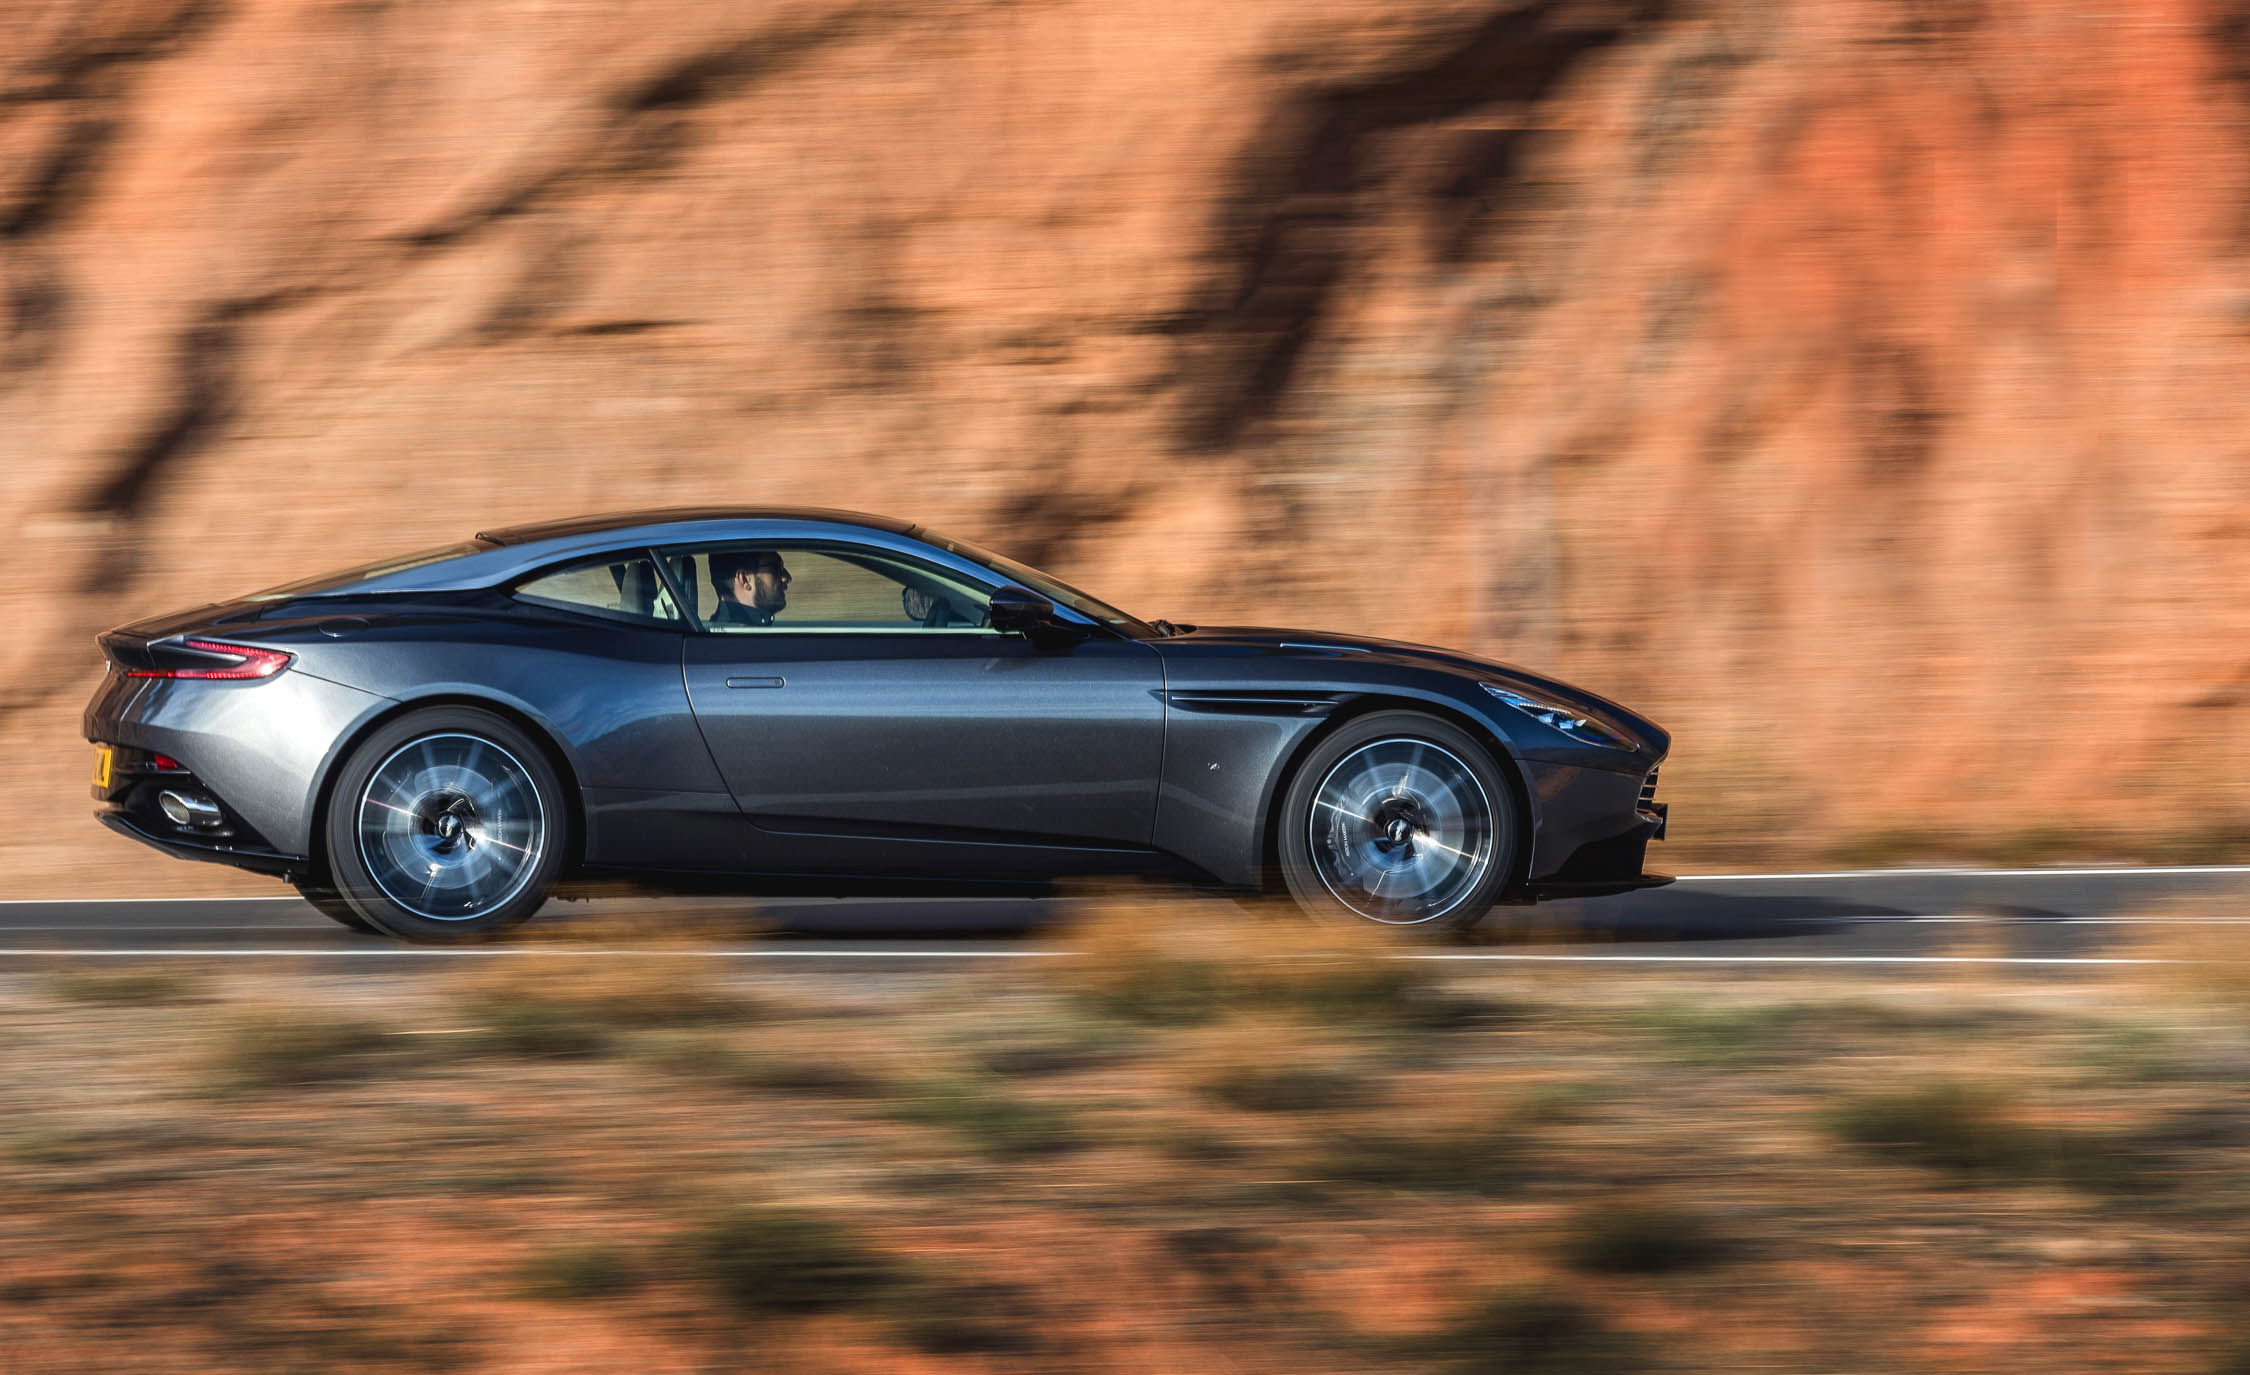 2017 Aston Martin Db11 Test Drive Side View (View 3 of 22)